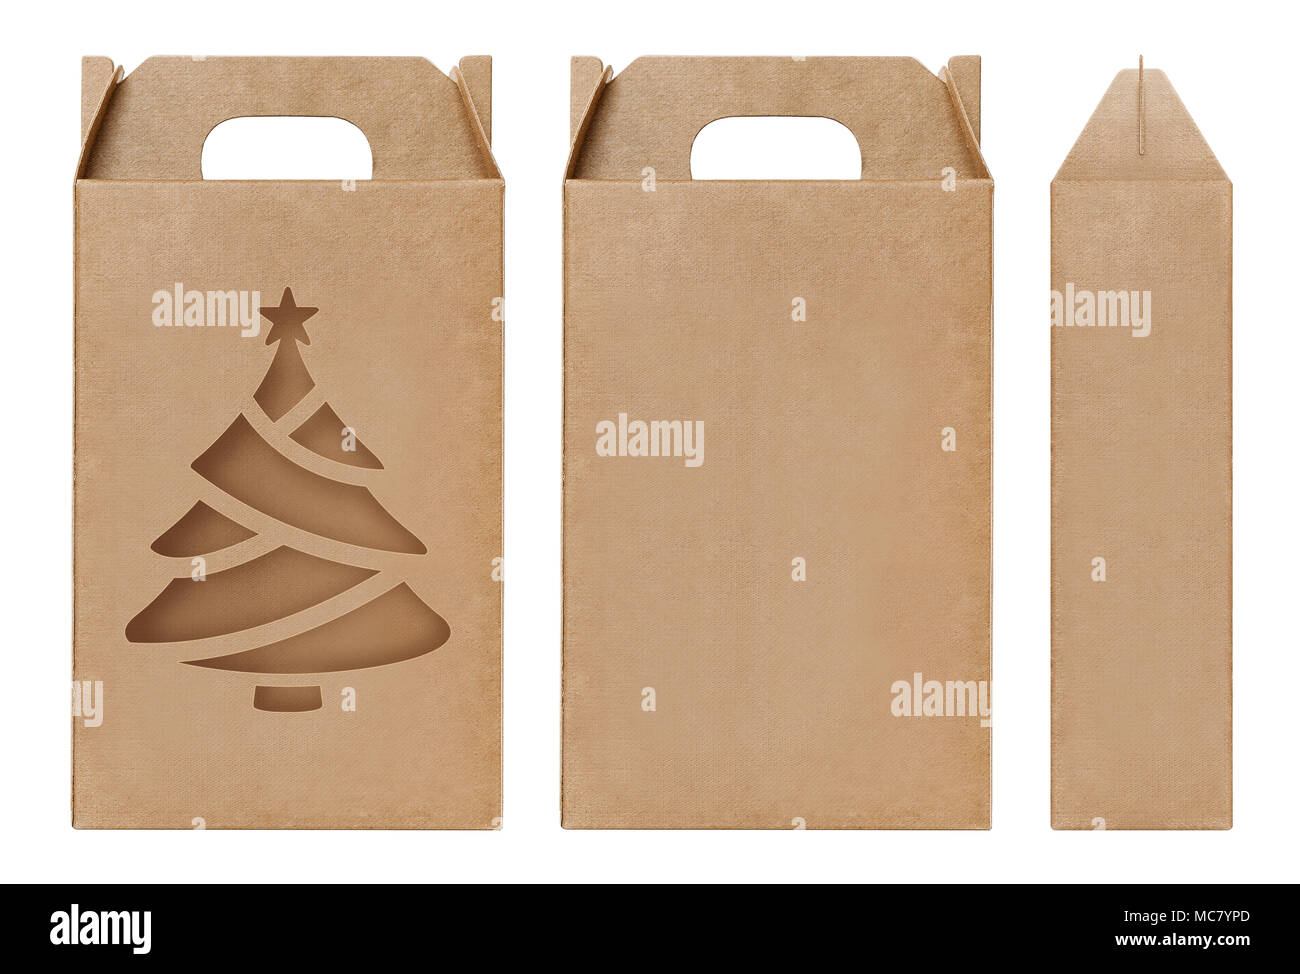 Box Brown Window Christmas Tree Shape Cut Out Packaging Template Empty Kraft Cardboard Isolated White Background Boxes Paper Natural